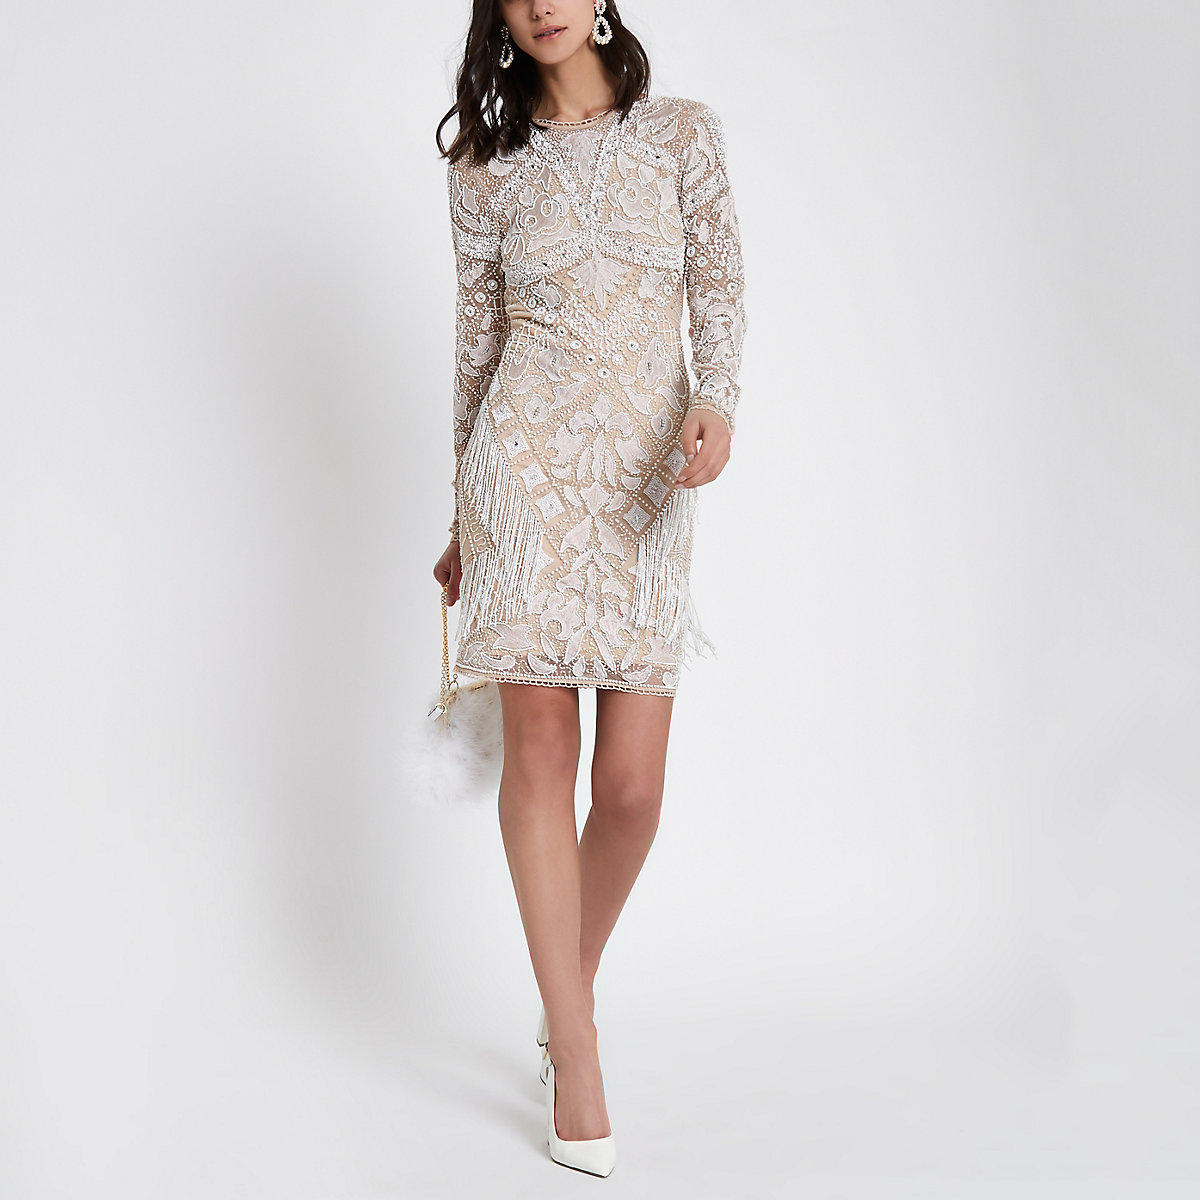 2805cc22759 Beige embellished long sleeve bodycon dress - Wedding Guest Dresses    Outfits - women